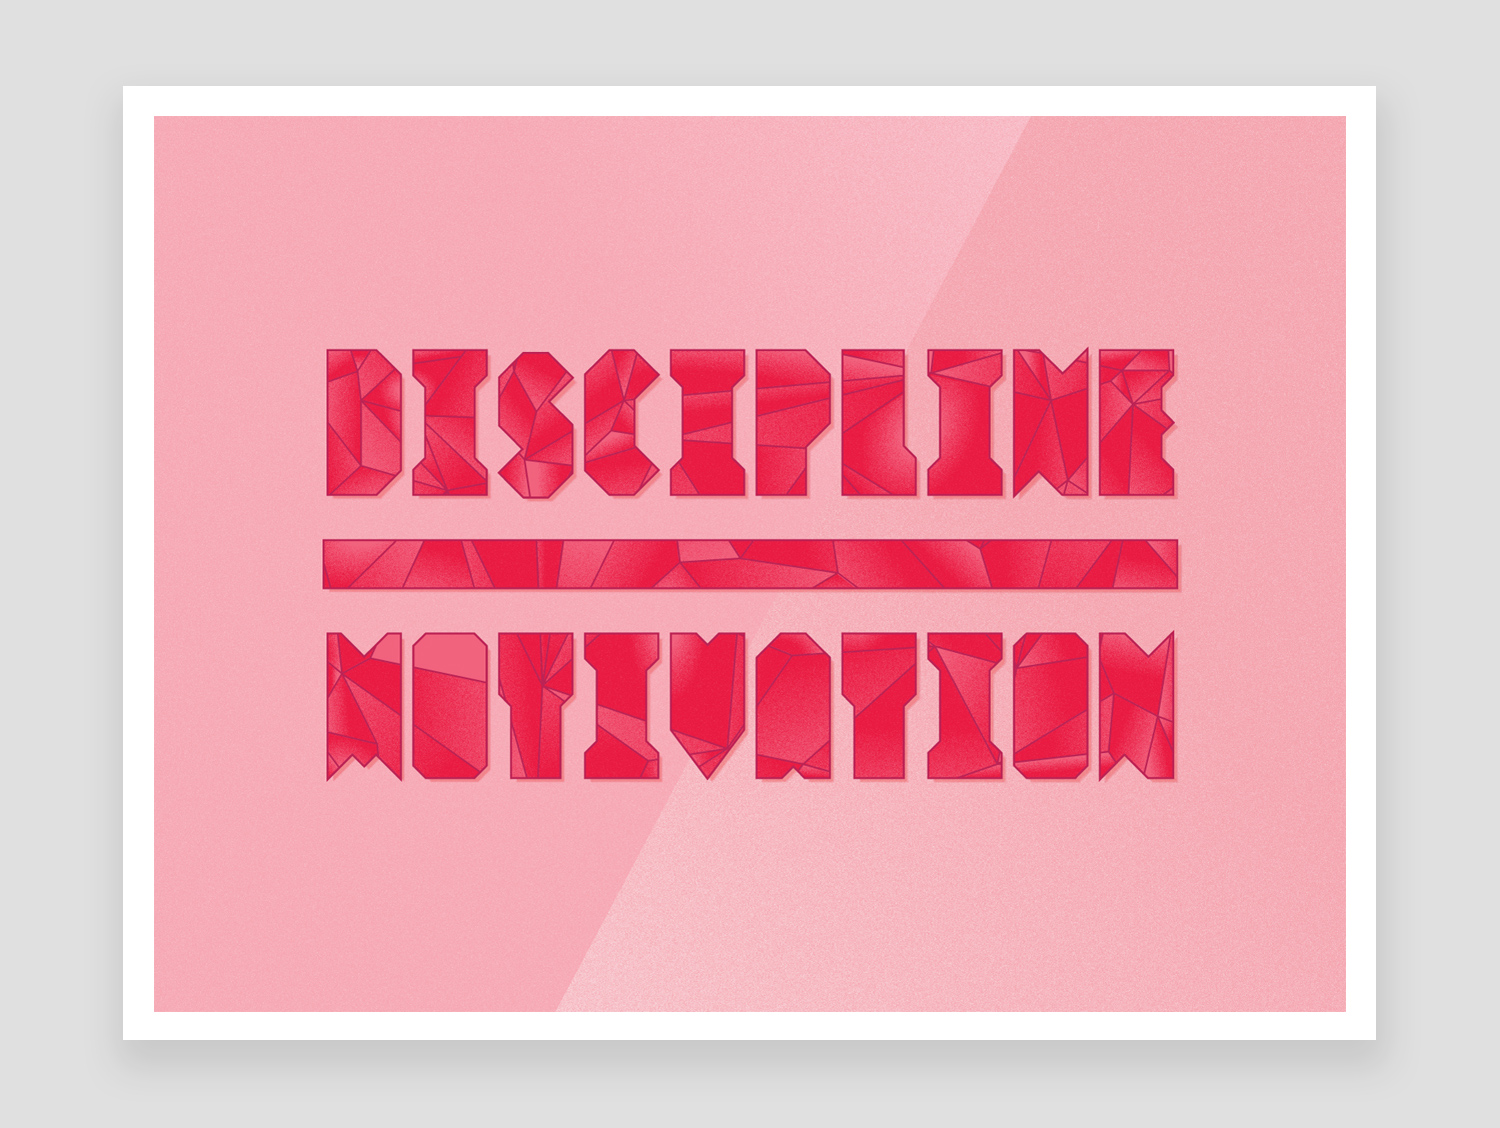 DisciplineOverMotivation_MOCKUP.jpg